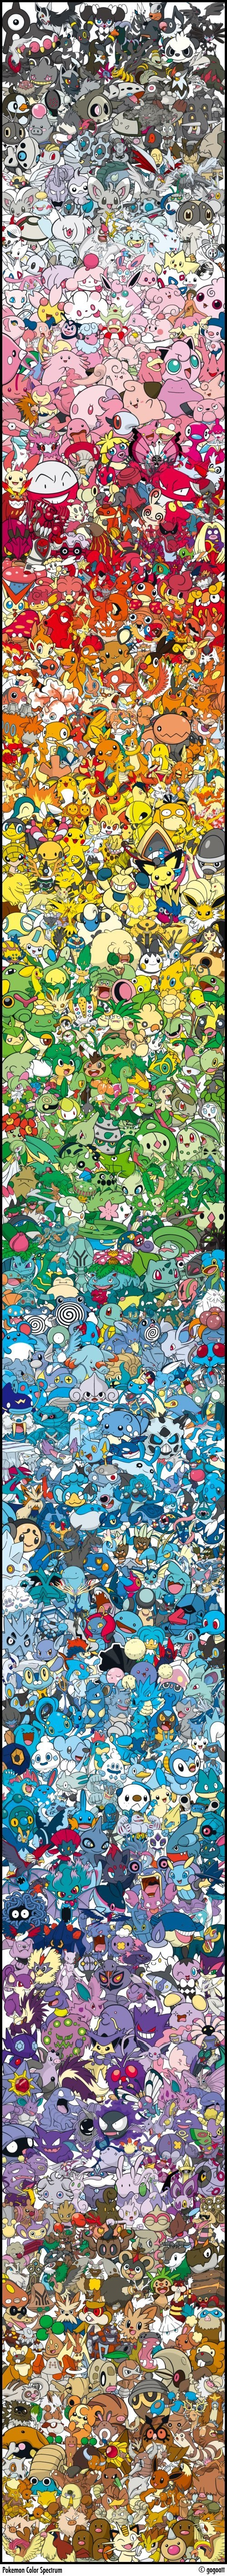 Pokémon color long image lol - 8271607552